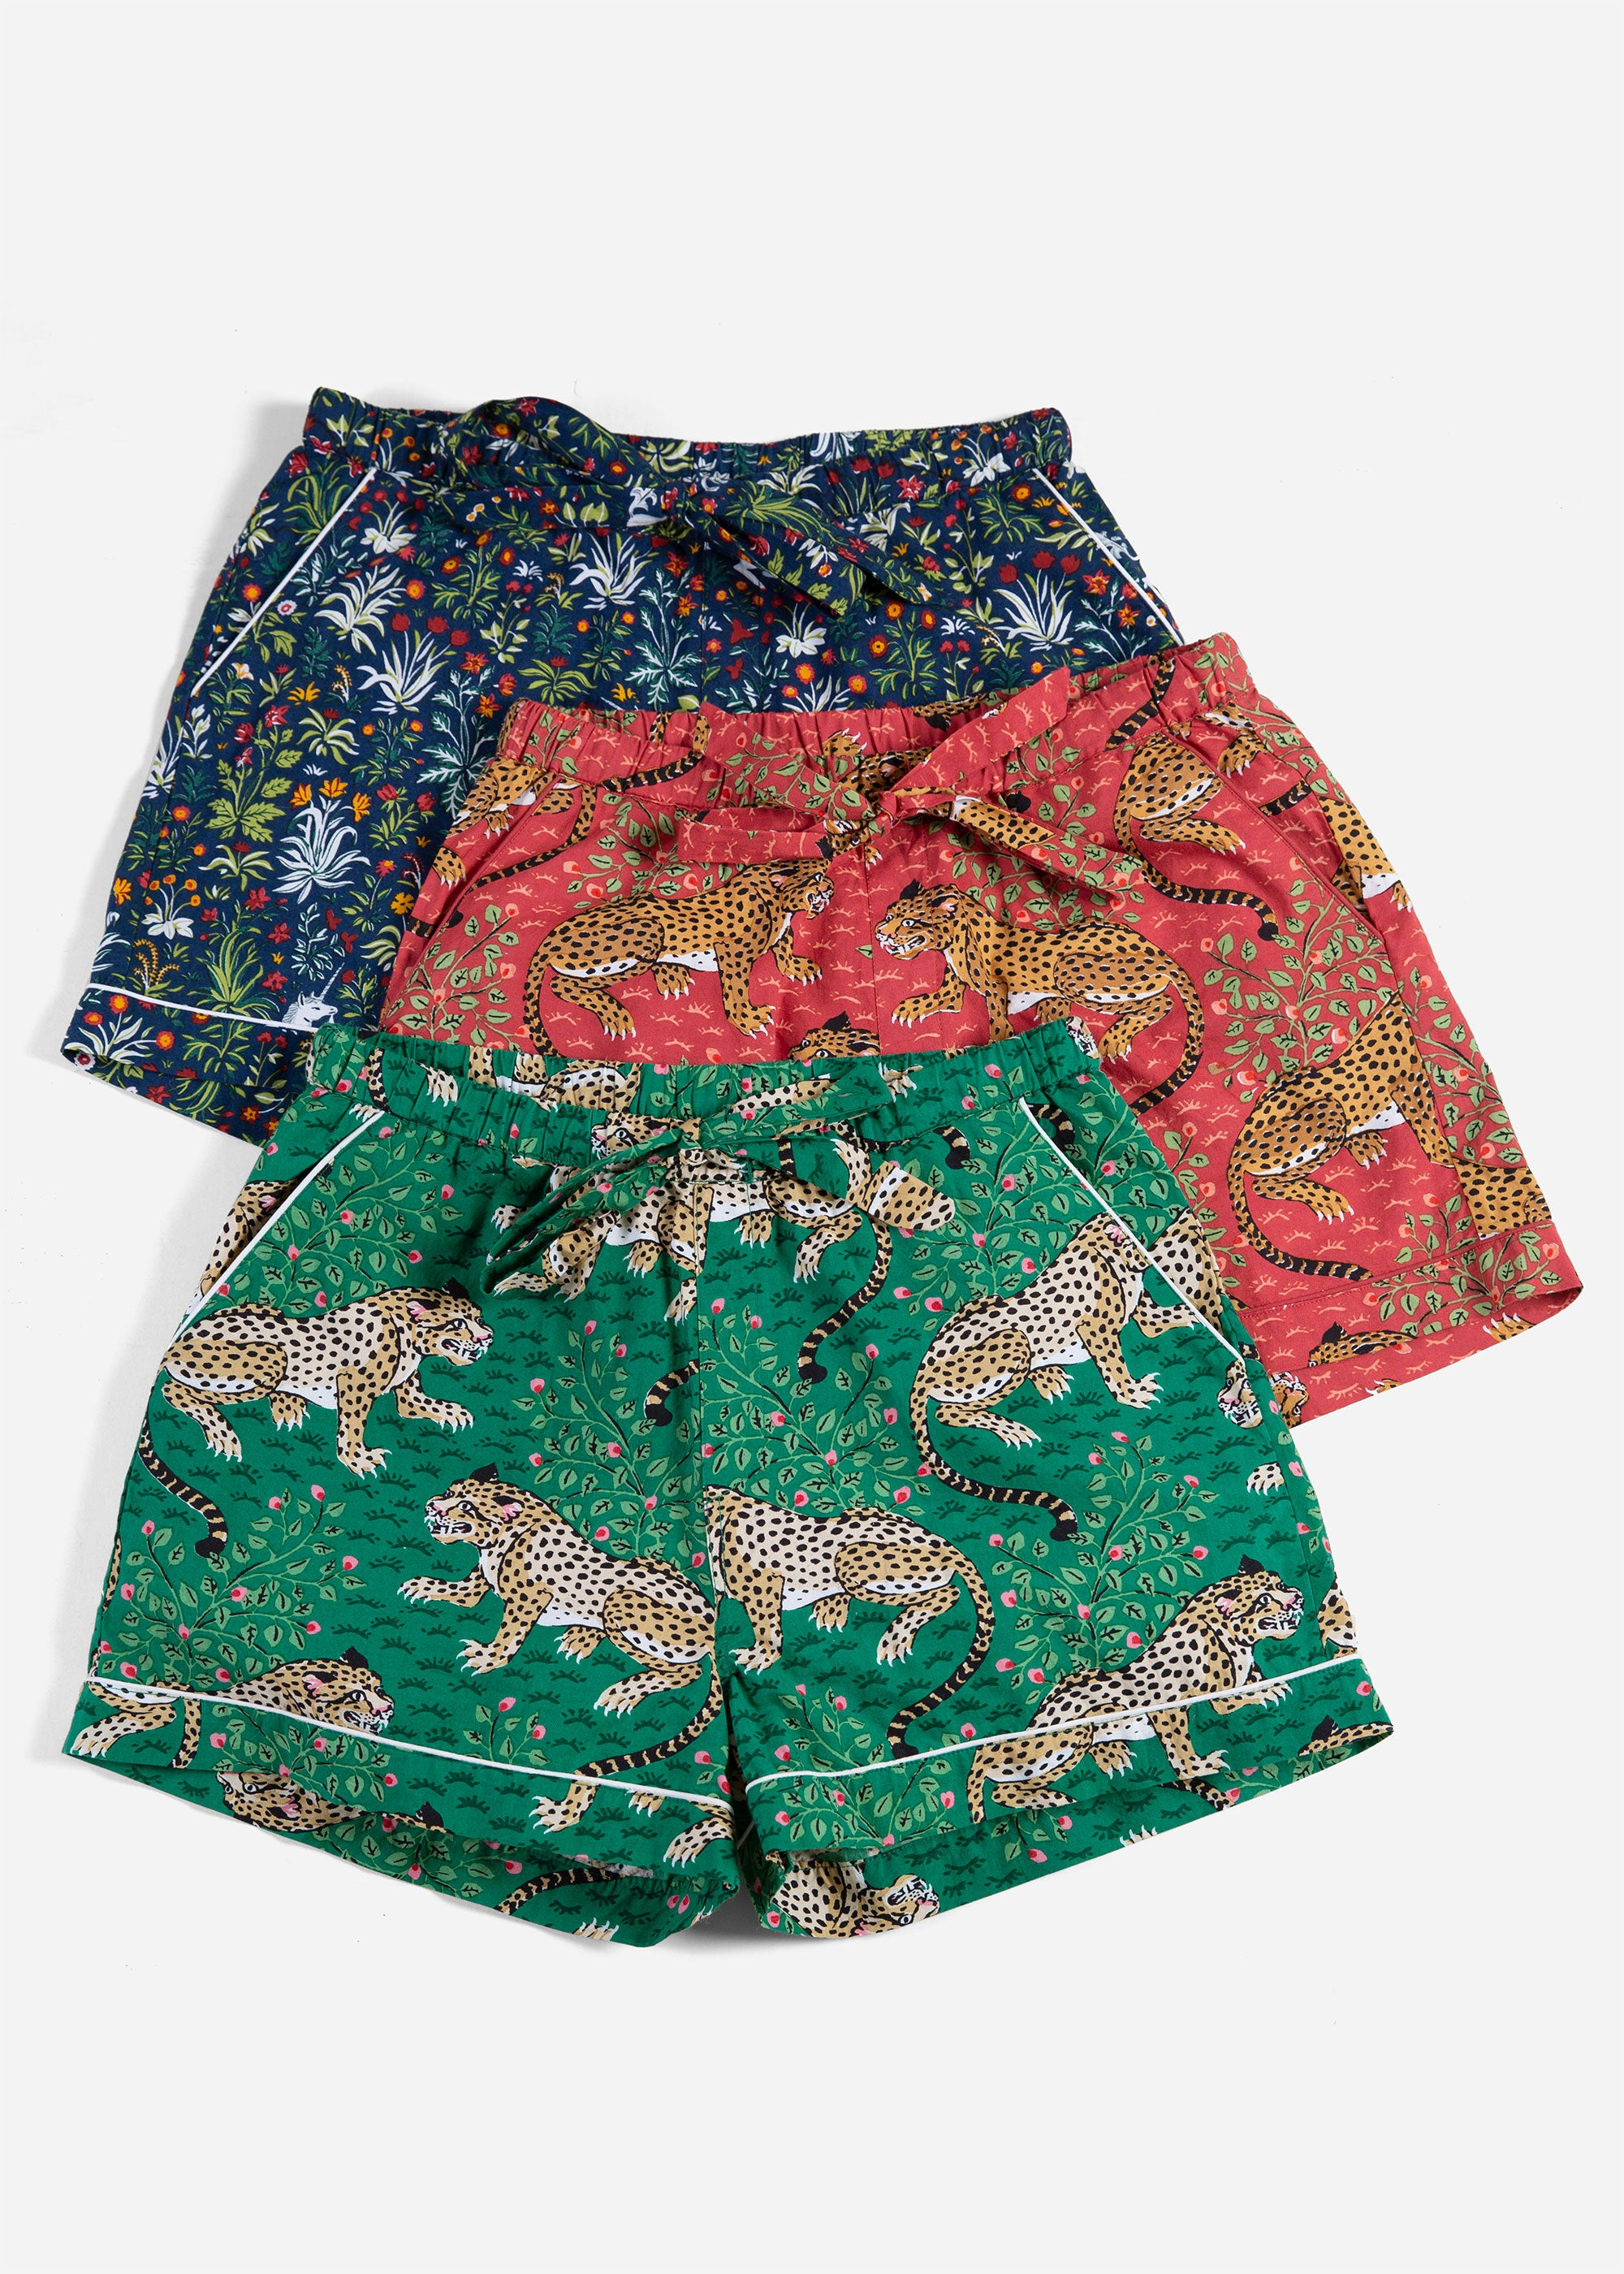 Jewel Tones - 3-Pack Pajama Shorts - Unicorn/Bagheera